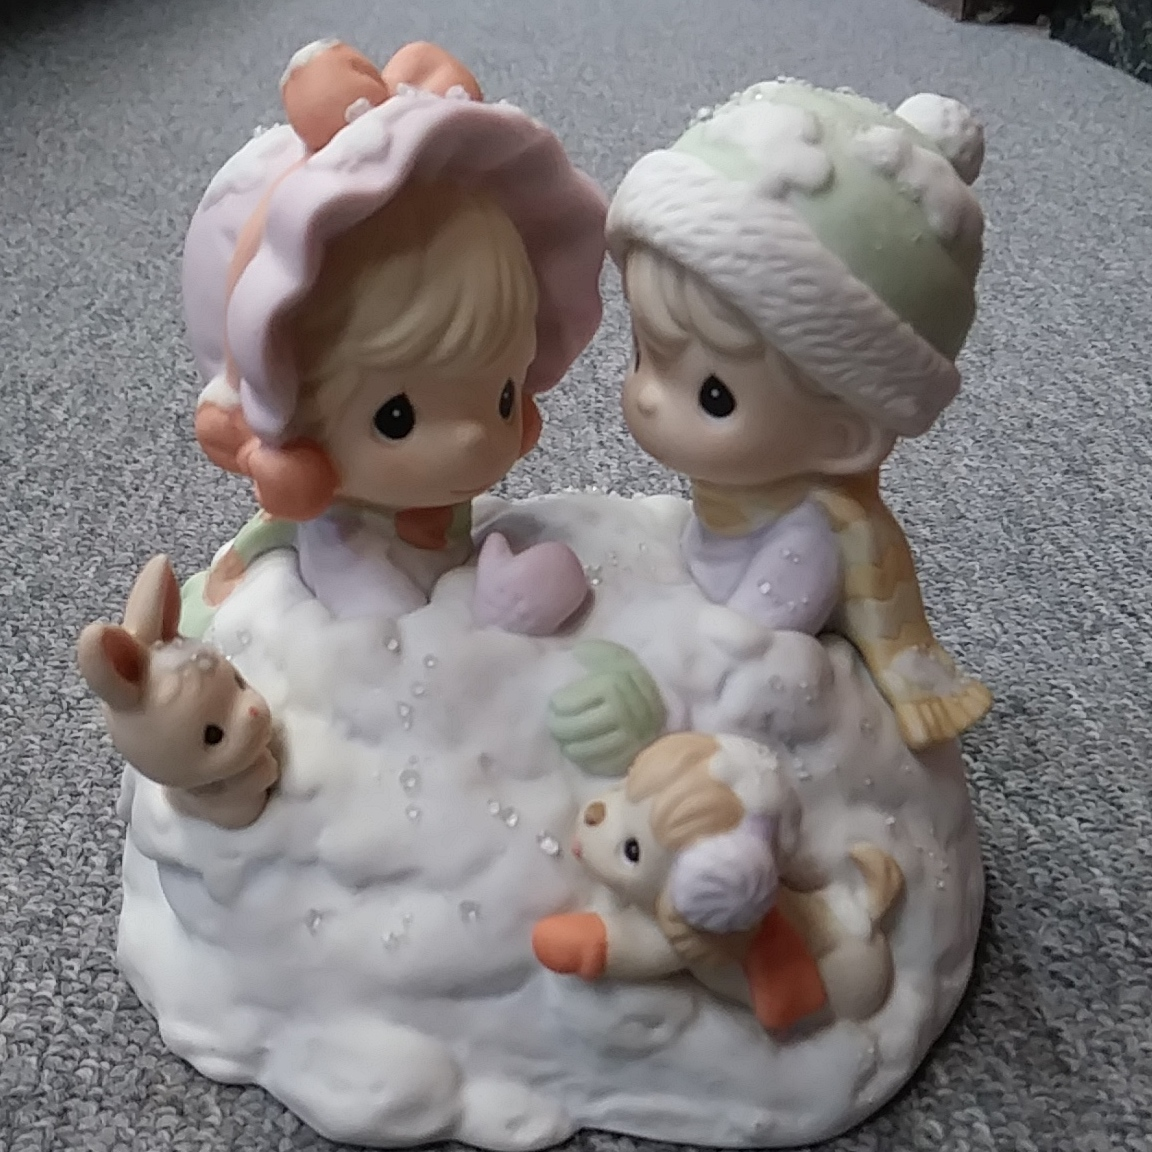 PRECIOUS MOMENTS HOLIDAY FIGURINE